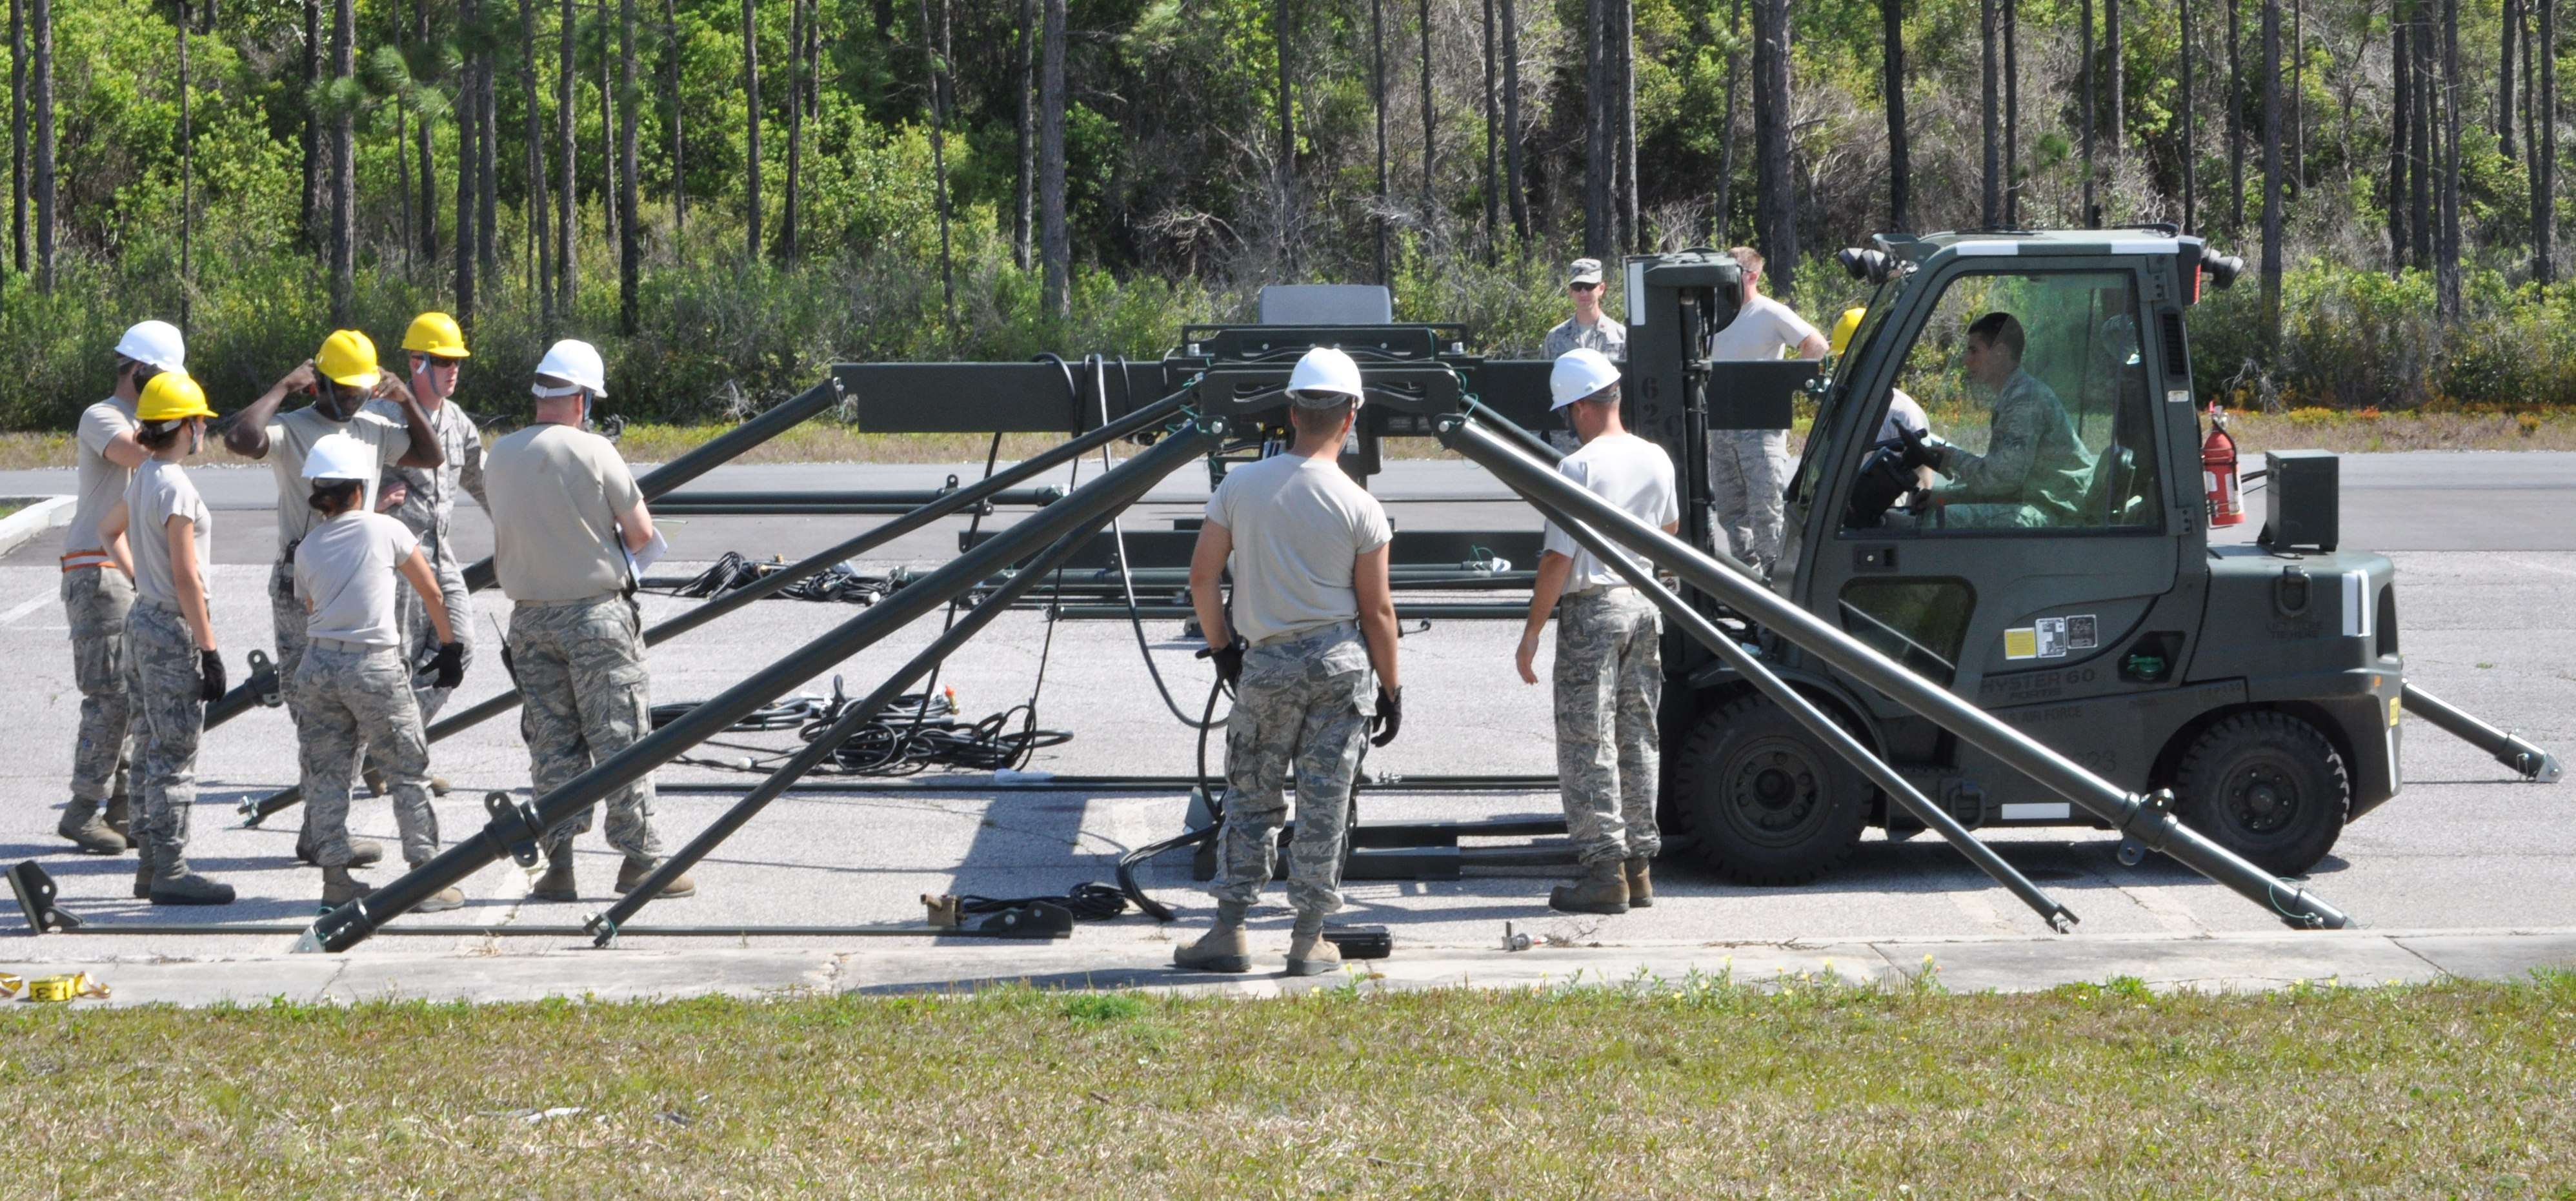 325th MXS build MAC II for first time > Tyndall Air Force